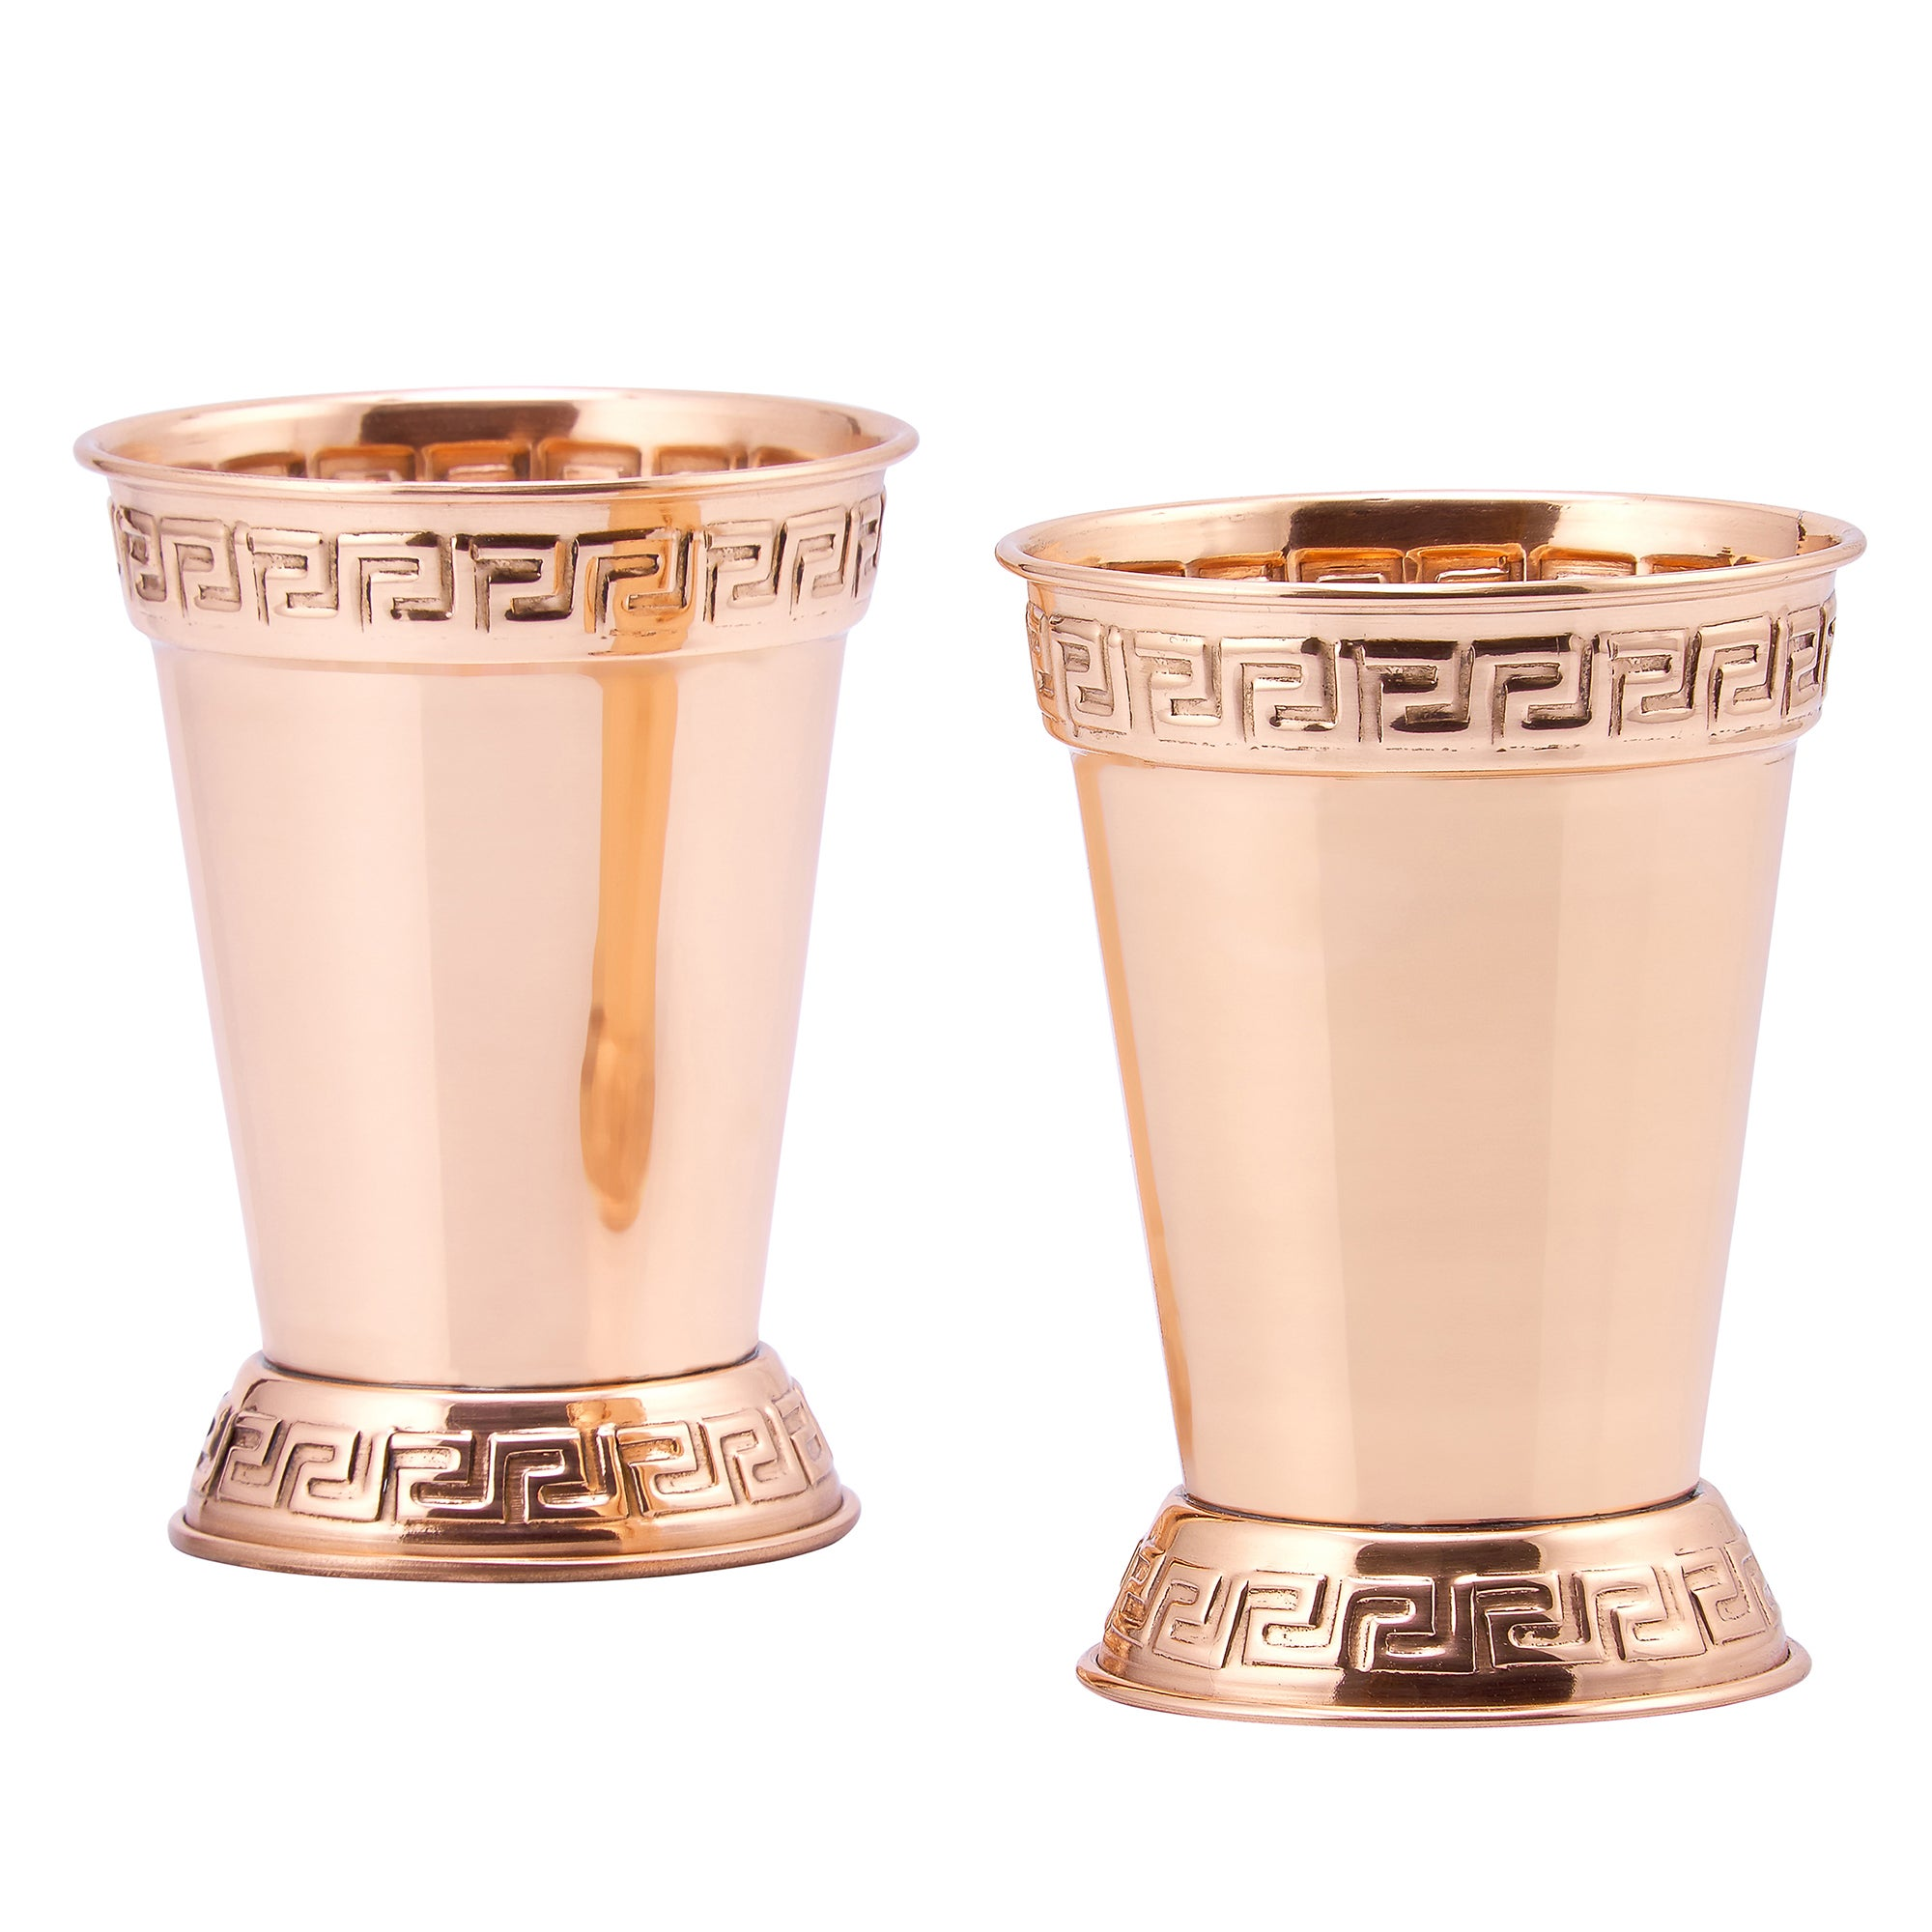 Old Dutch 12-ounce Mint Julep Cups (Set of 2) (Solid Copp...